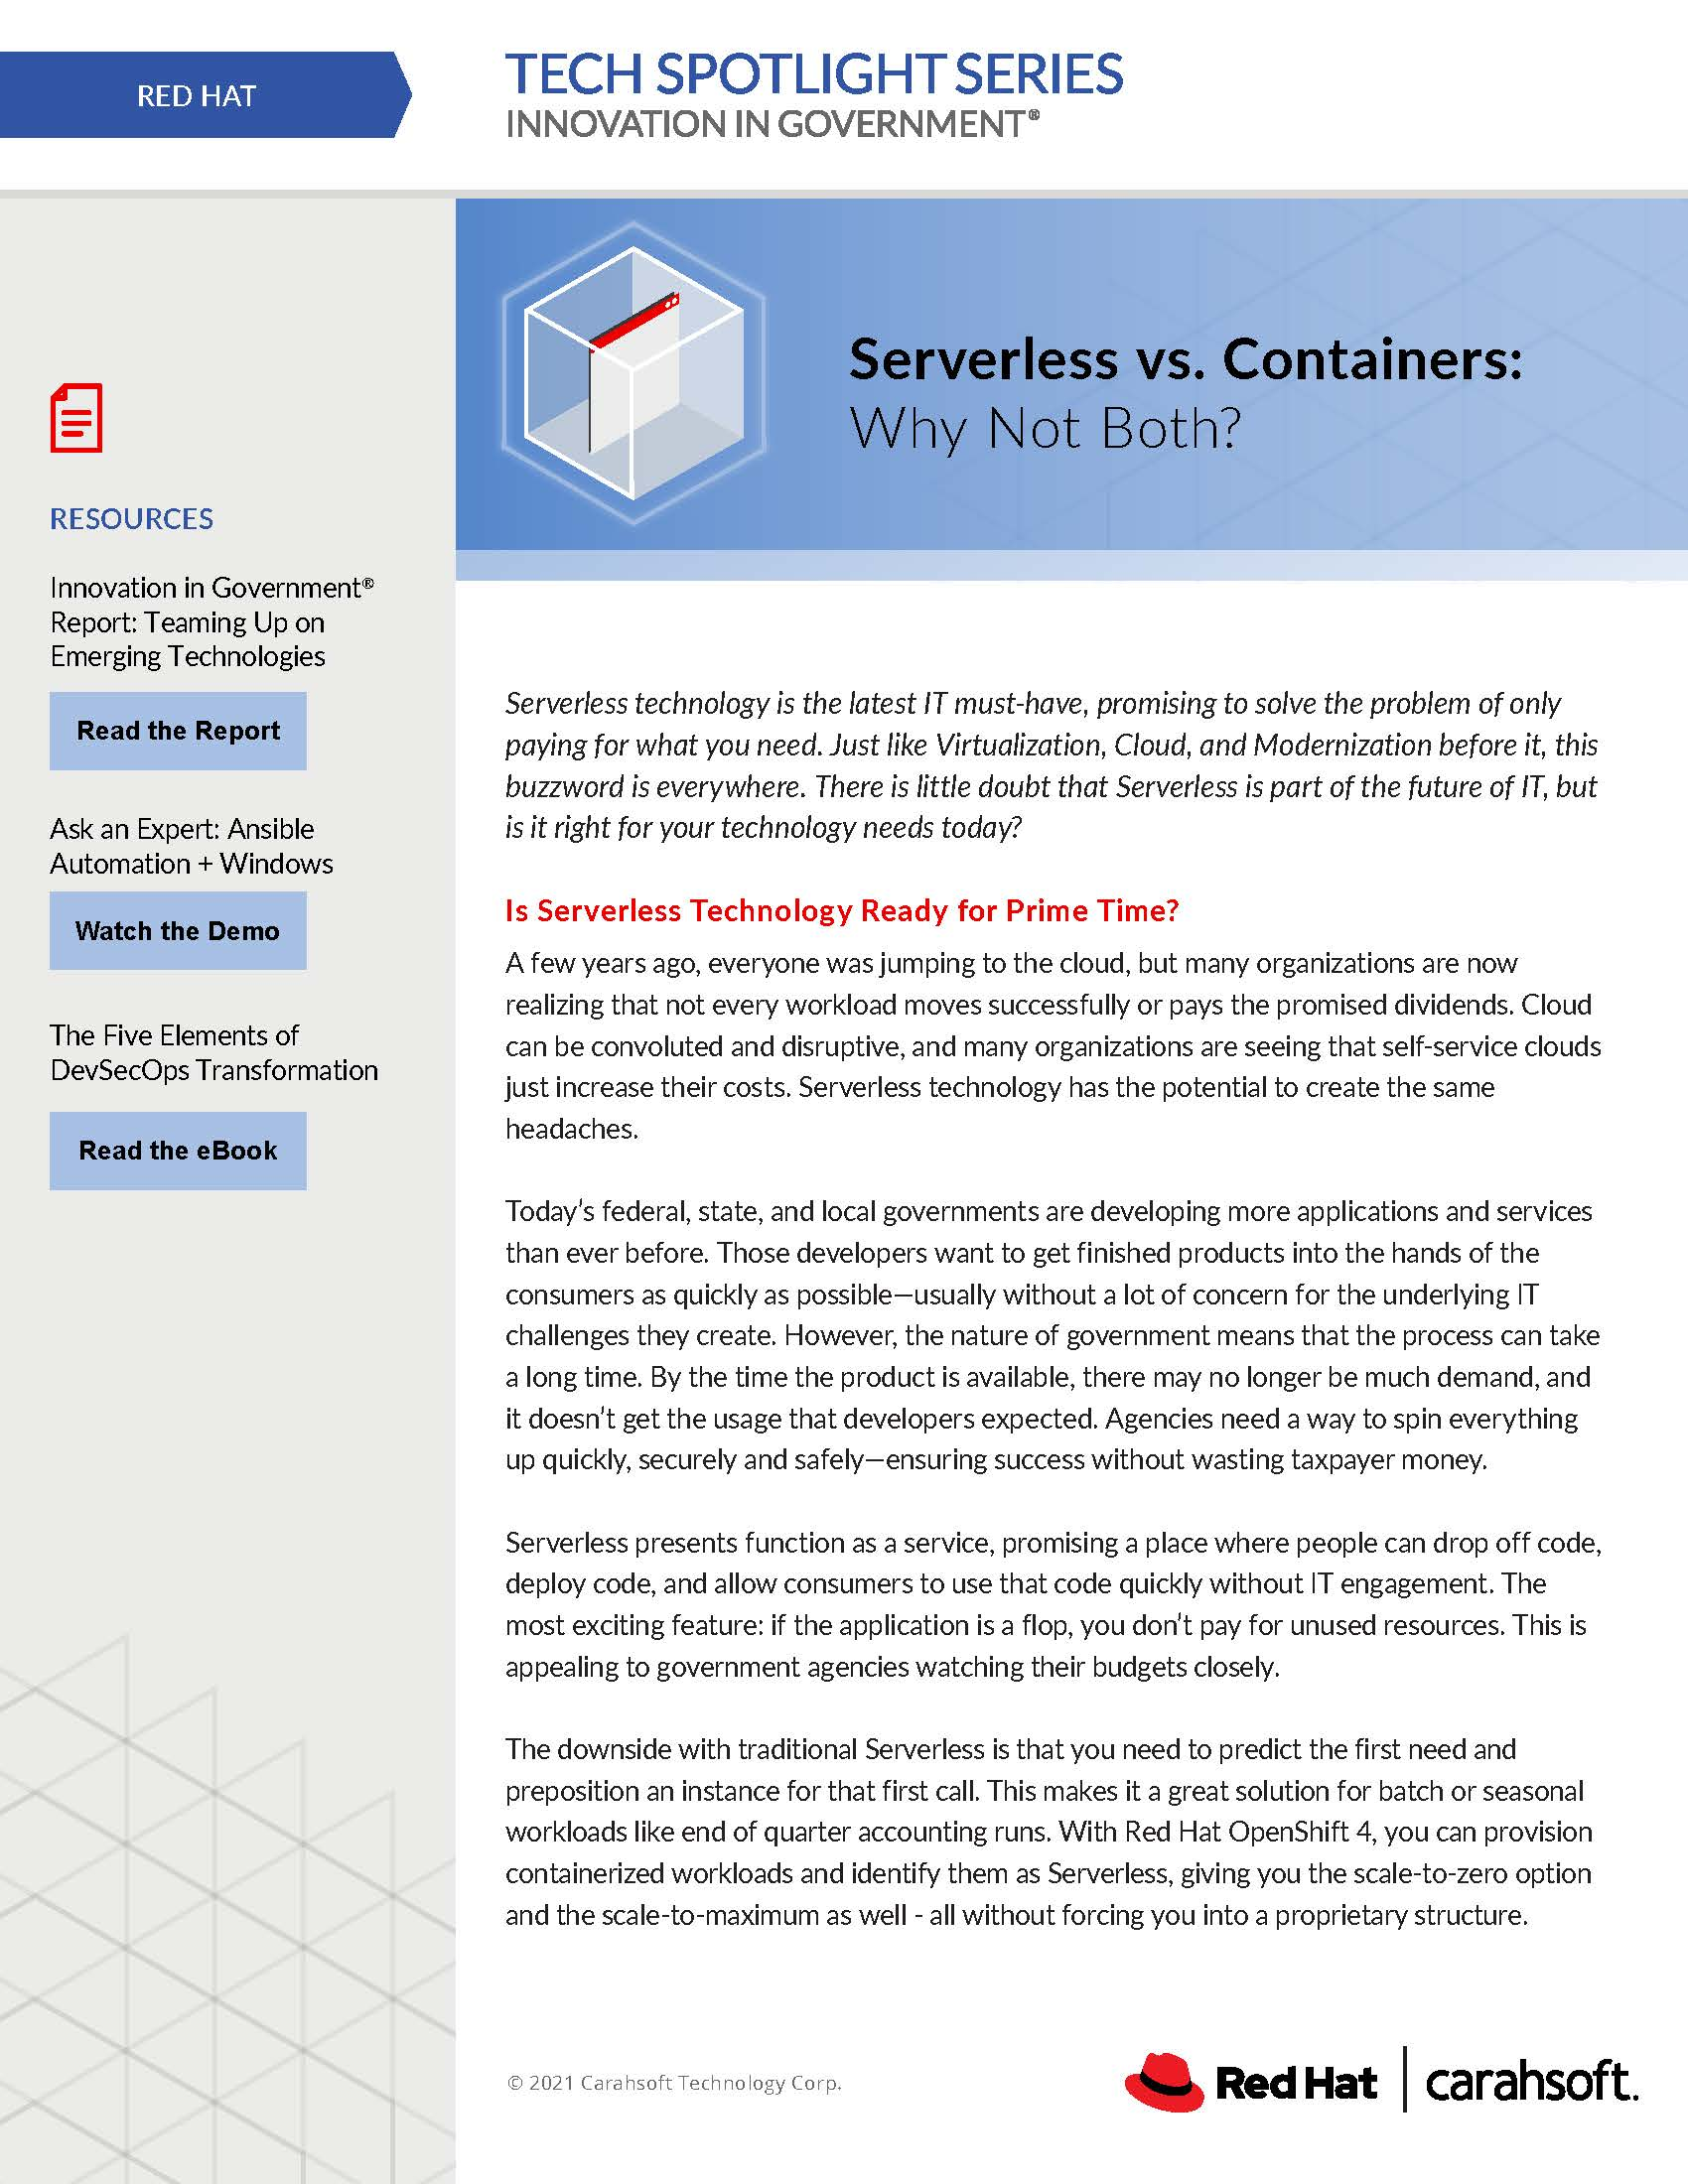 Tech Spotlight Red Hat Serverless vs. Containers Graphic